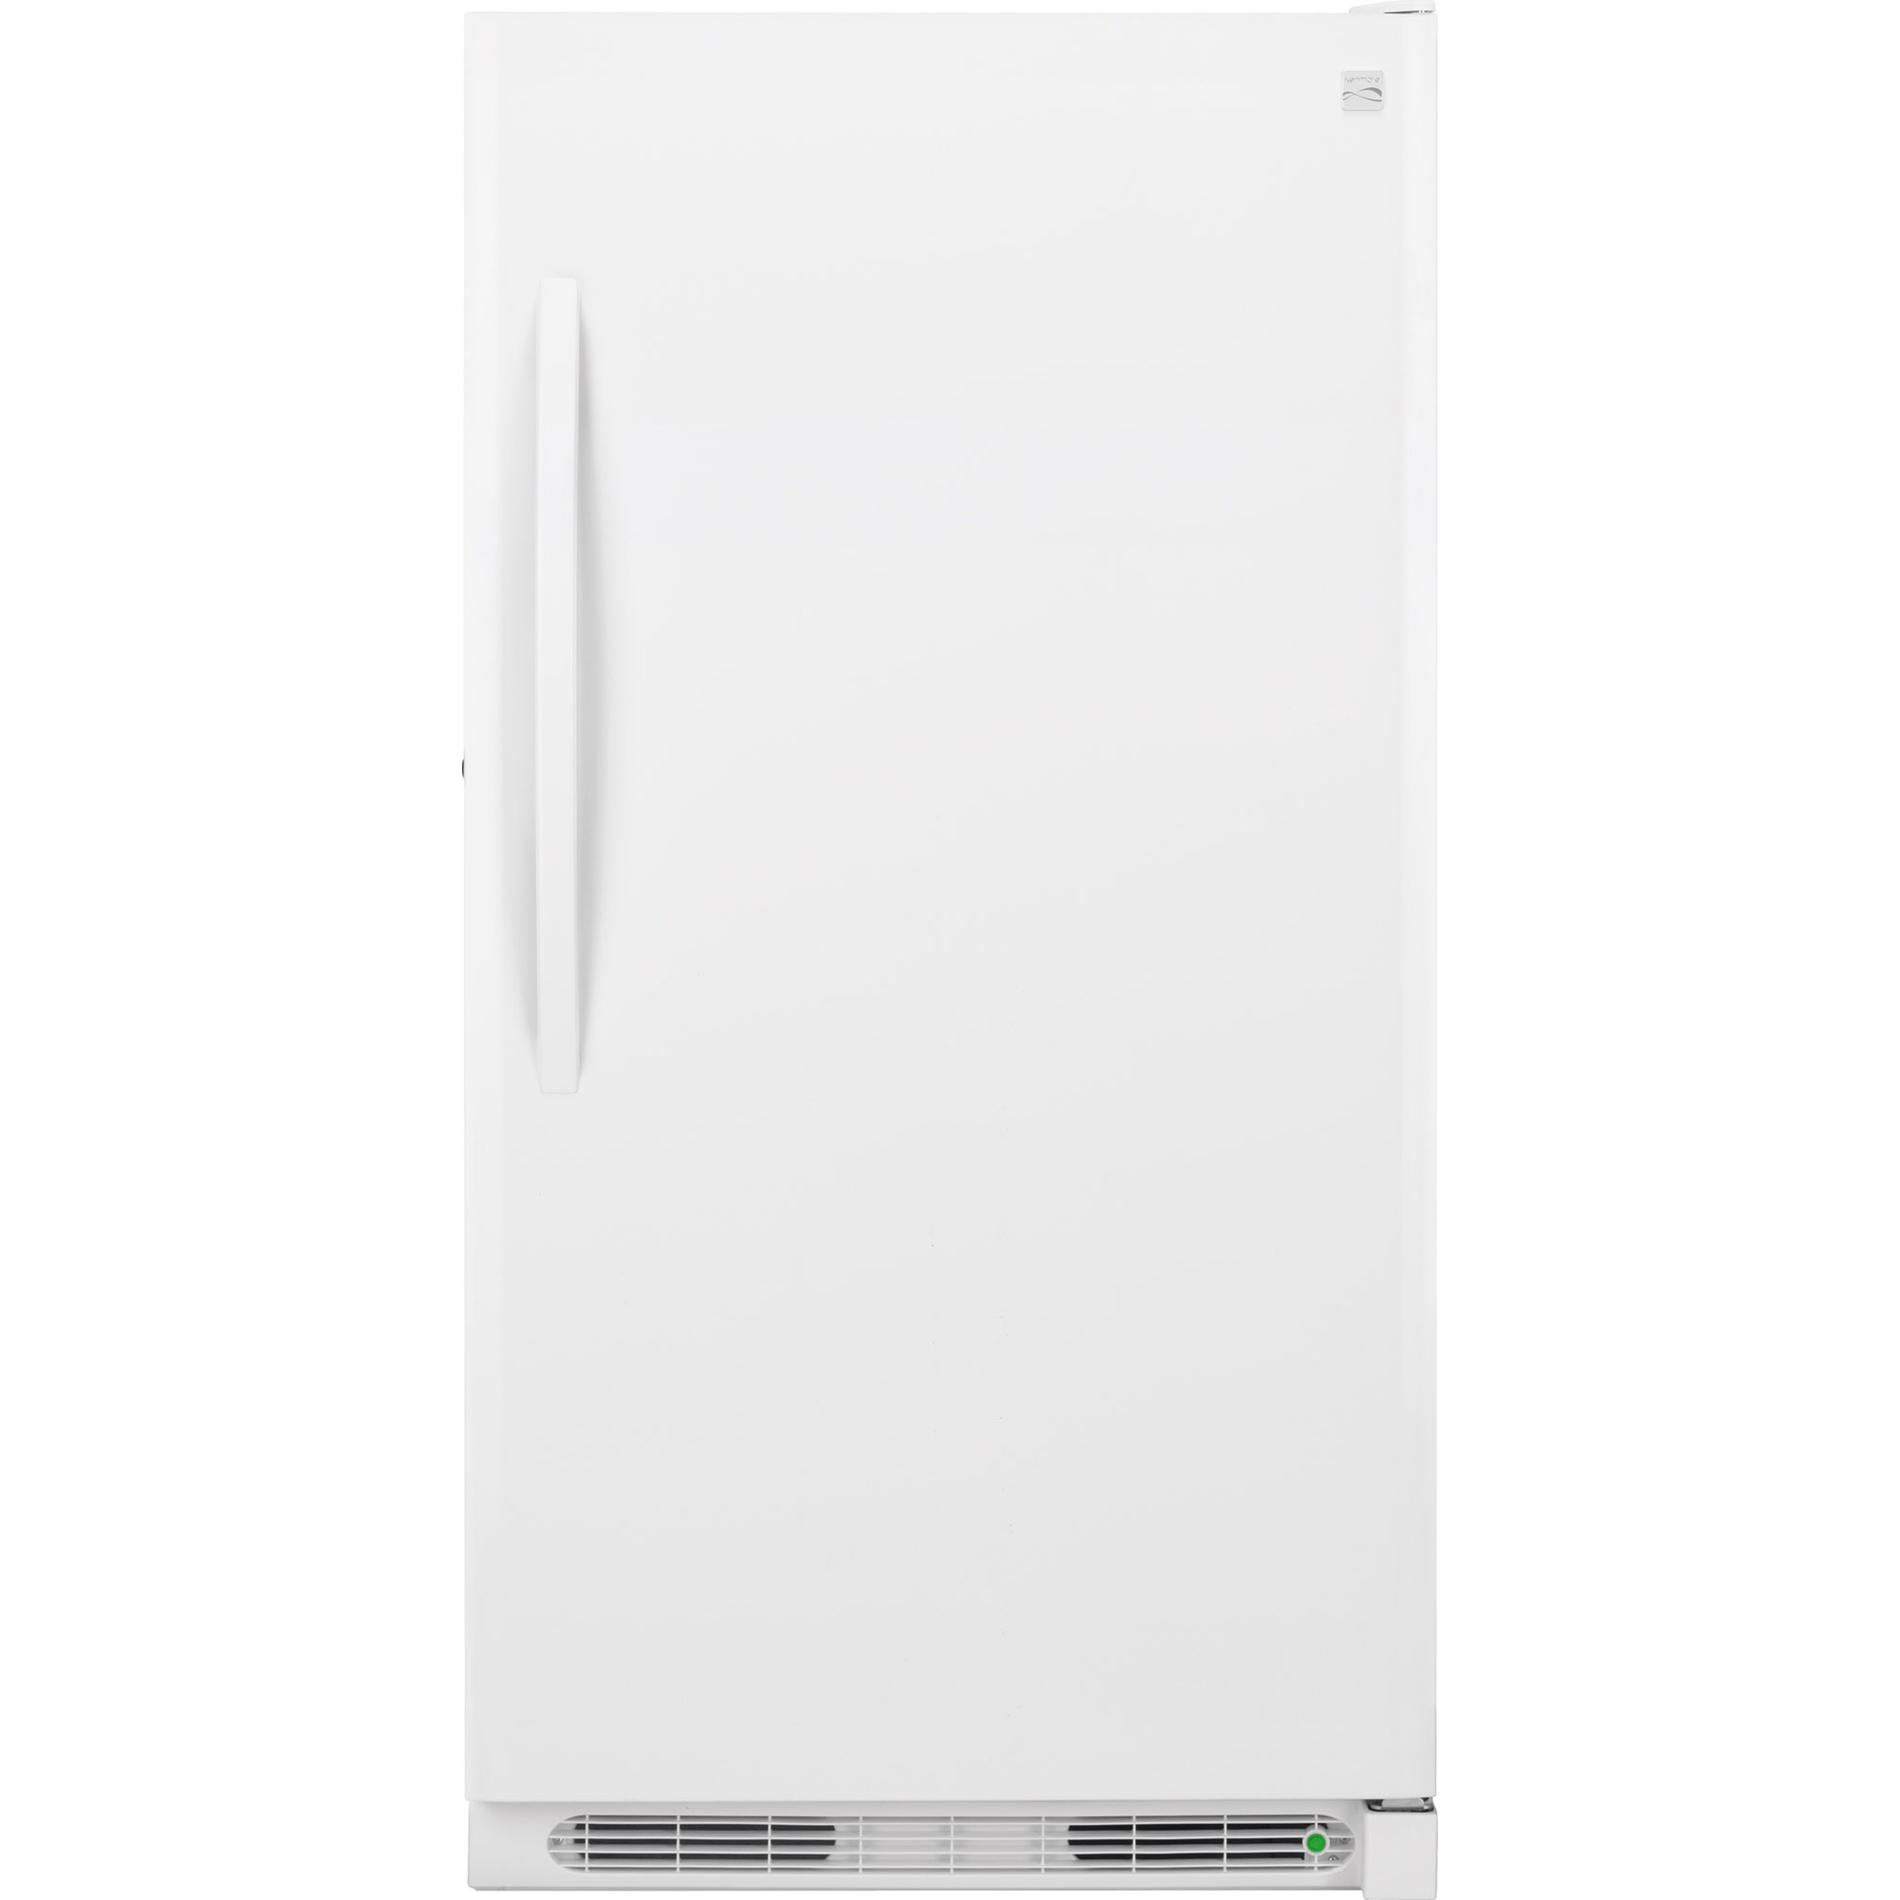 Kenmore 22742 16.6 cu. ft. Upright Freezer - White